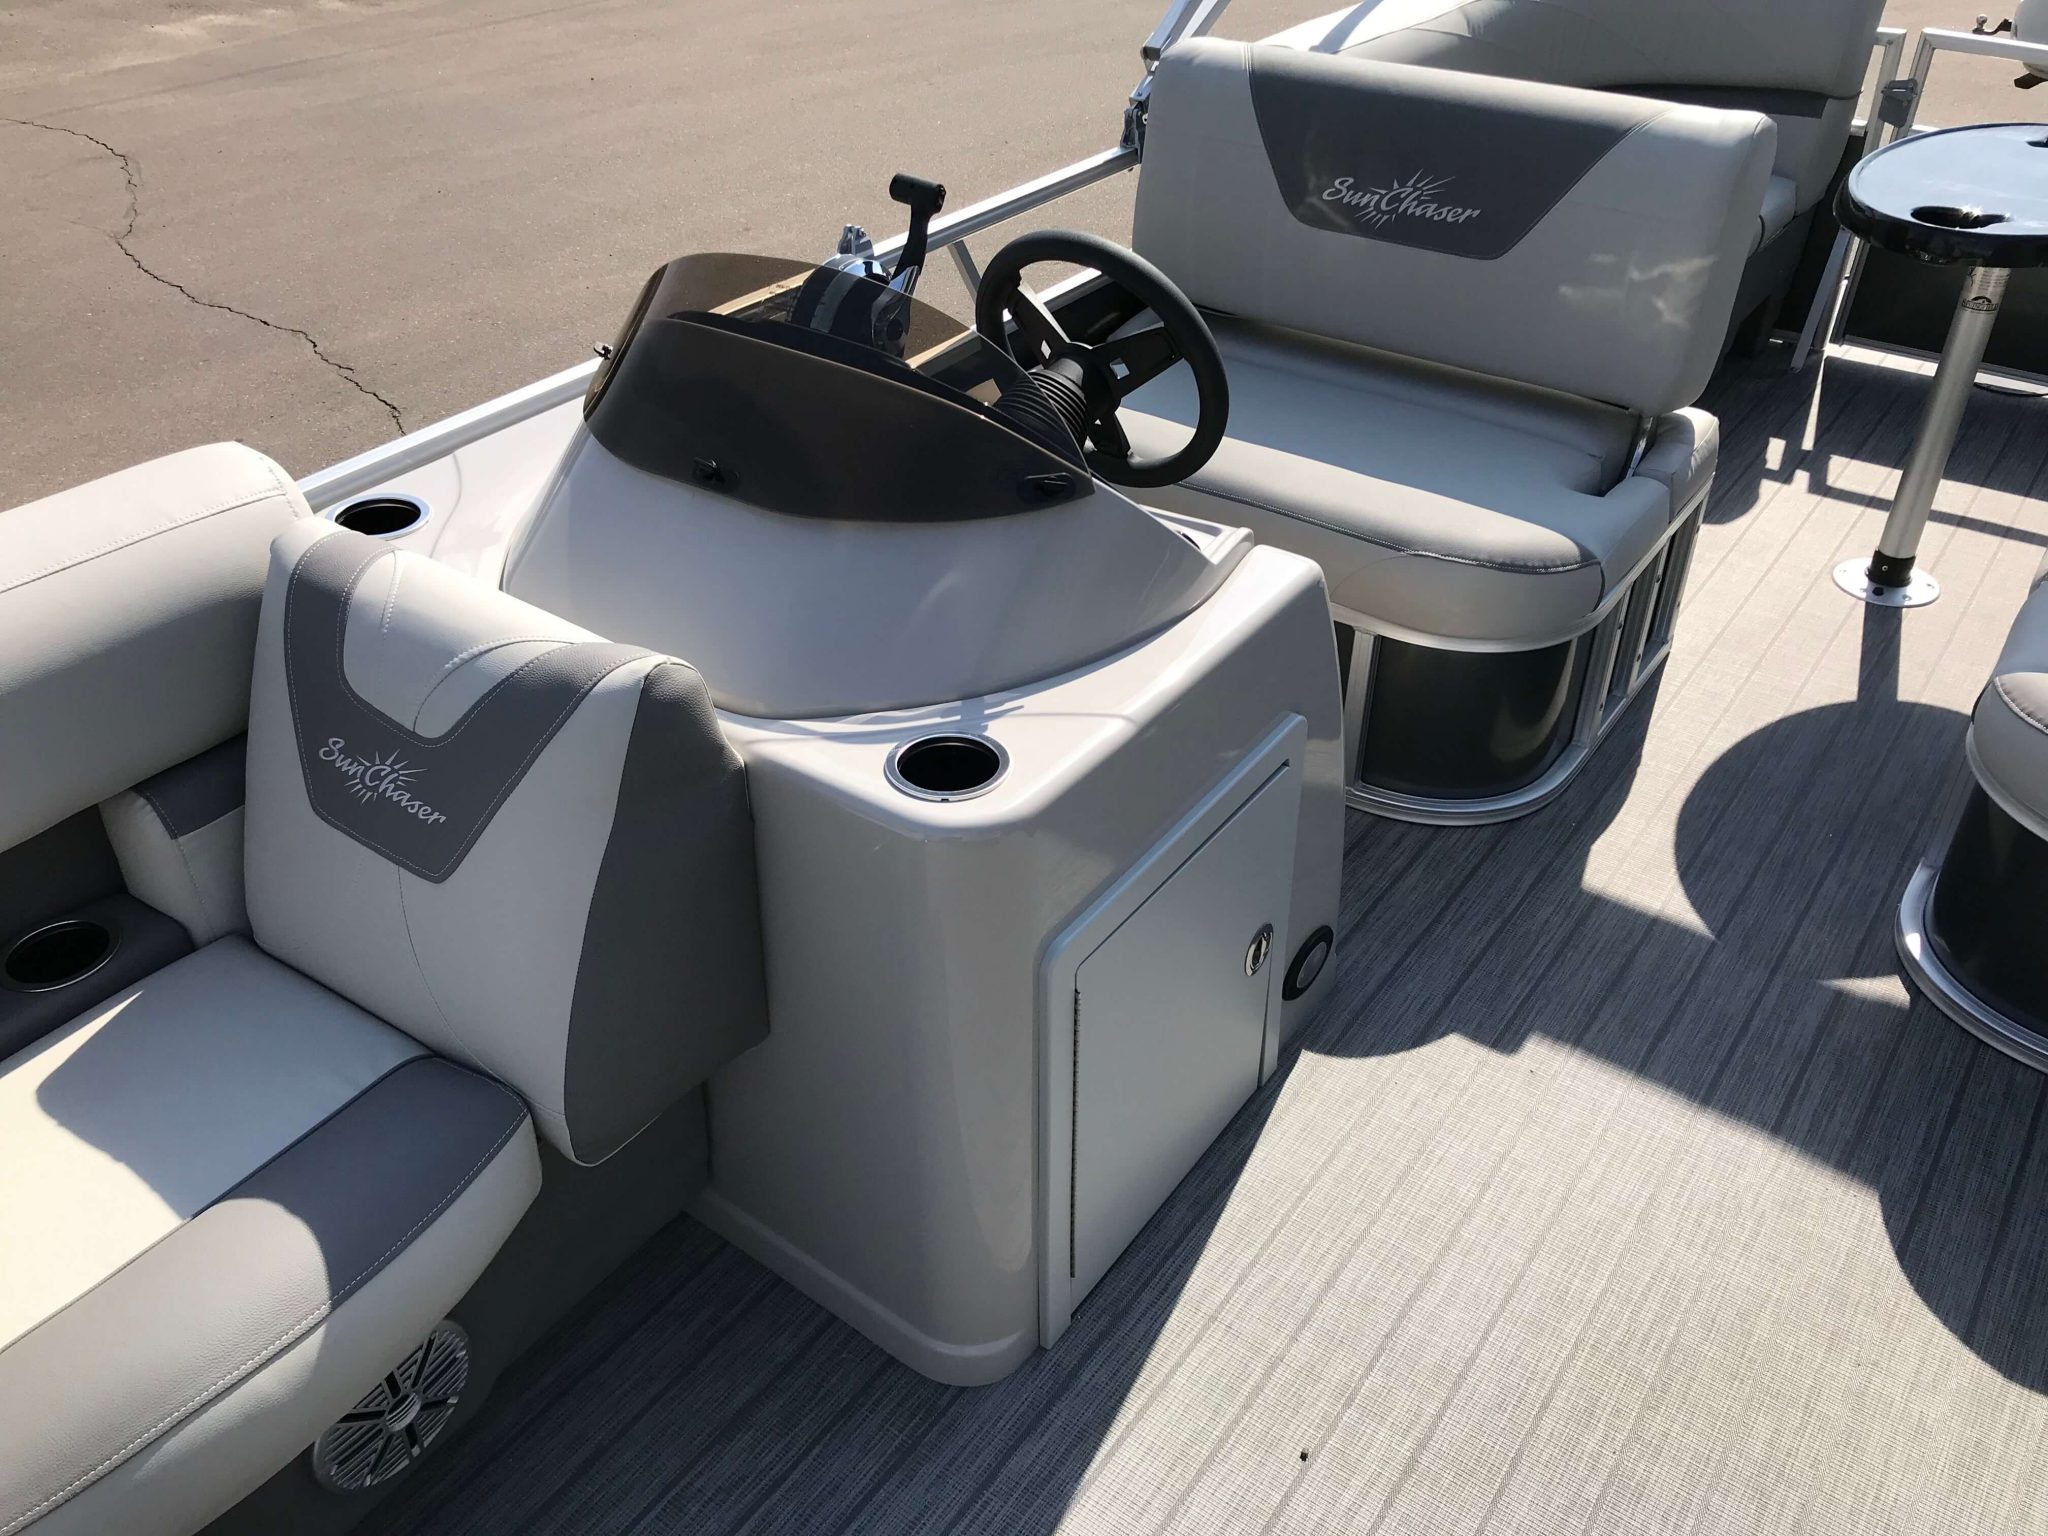 2019 SunChaser Geneva 20 LR SB Helm And Captains Chair